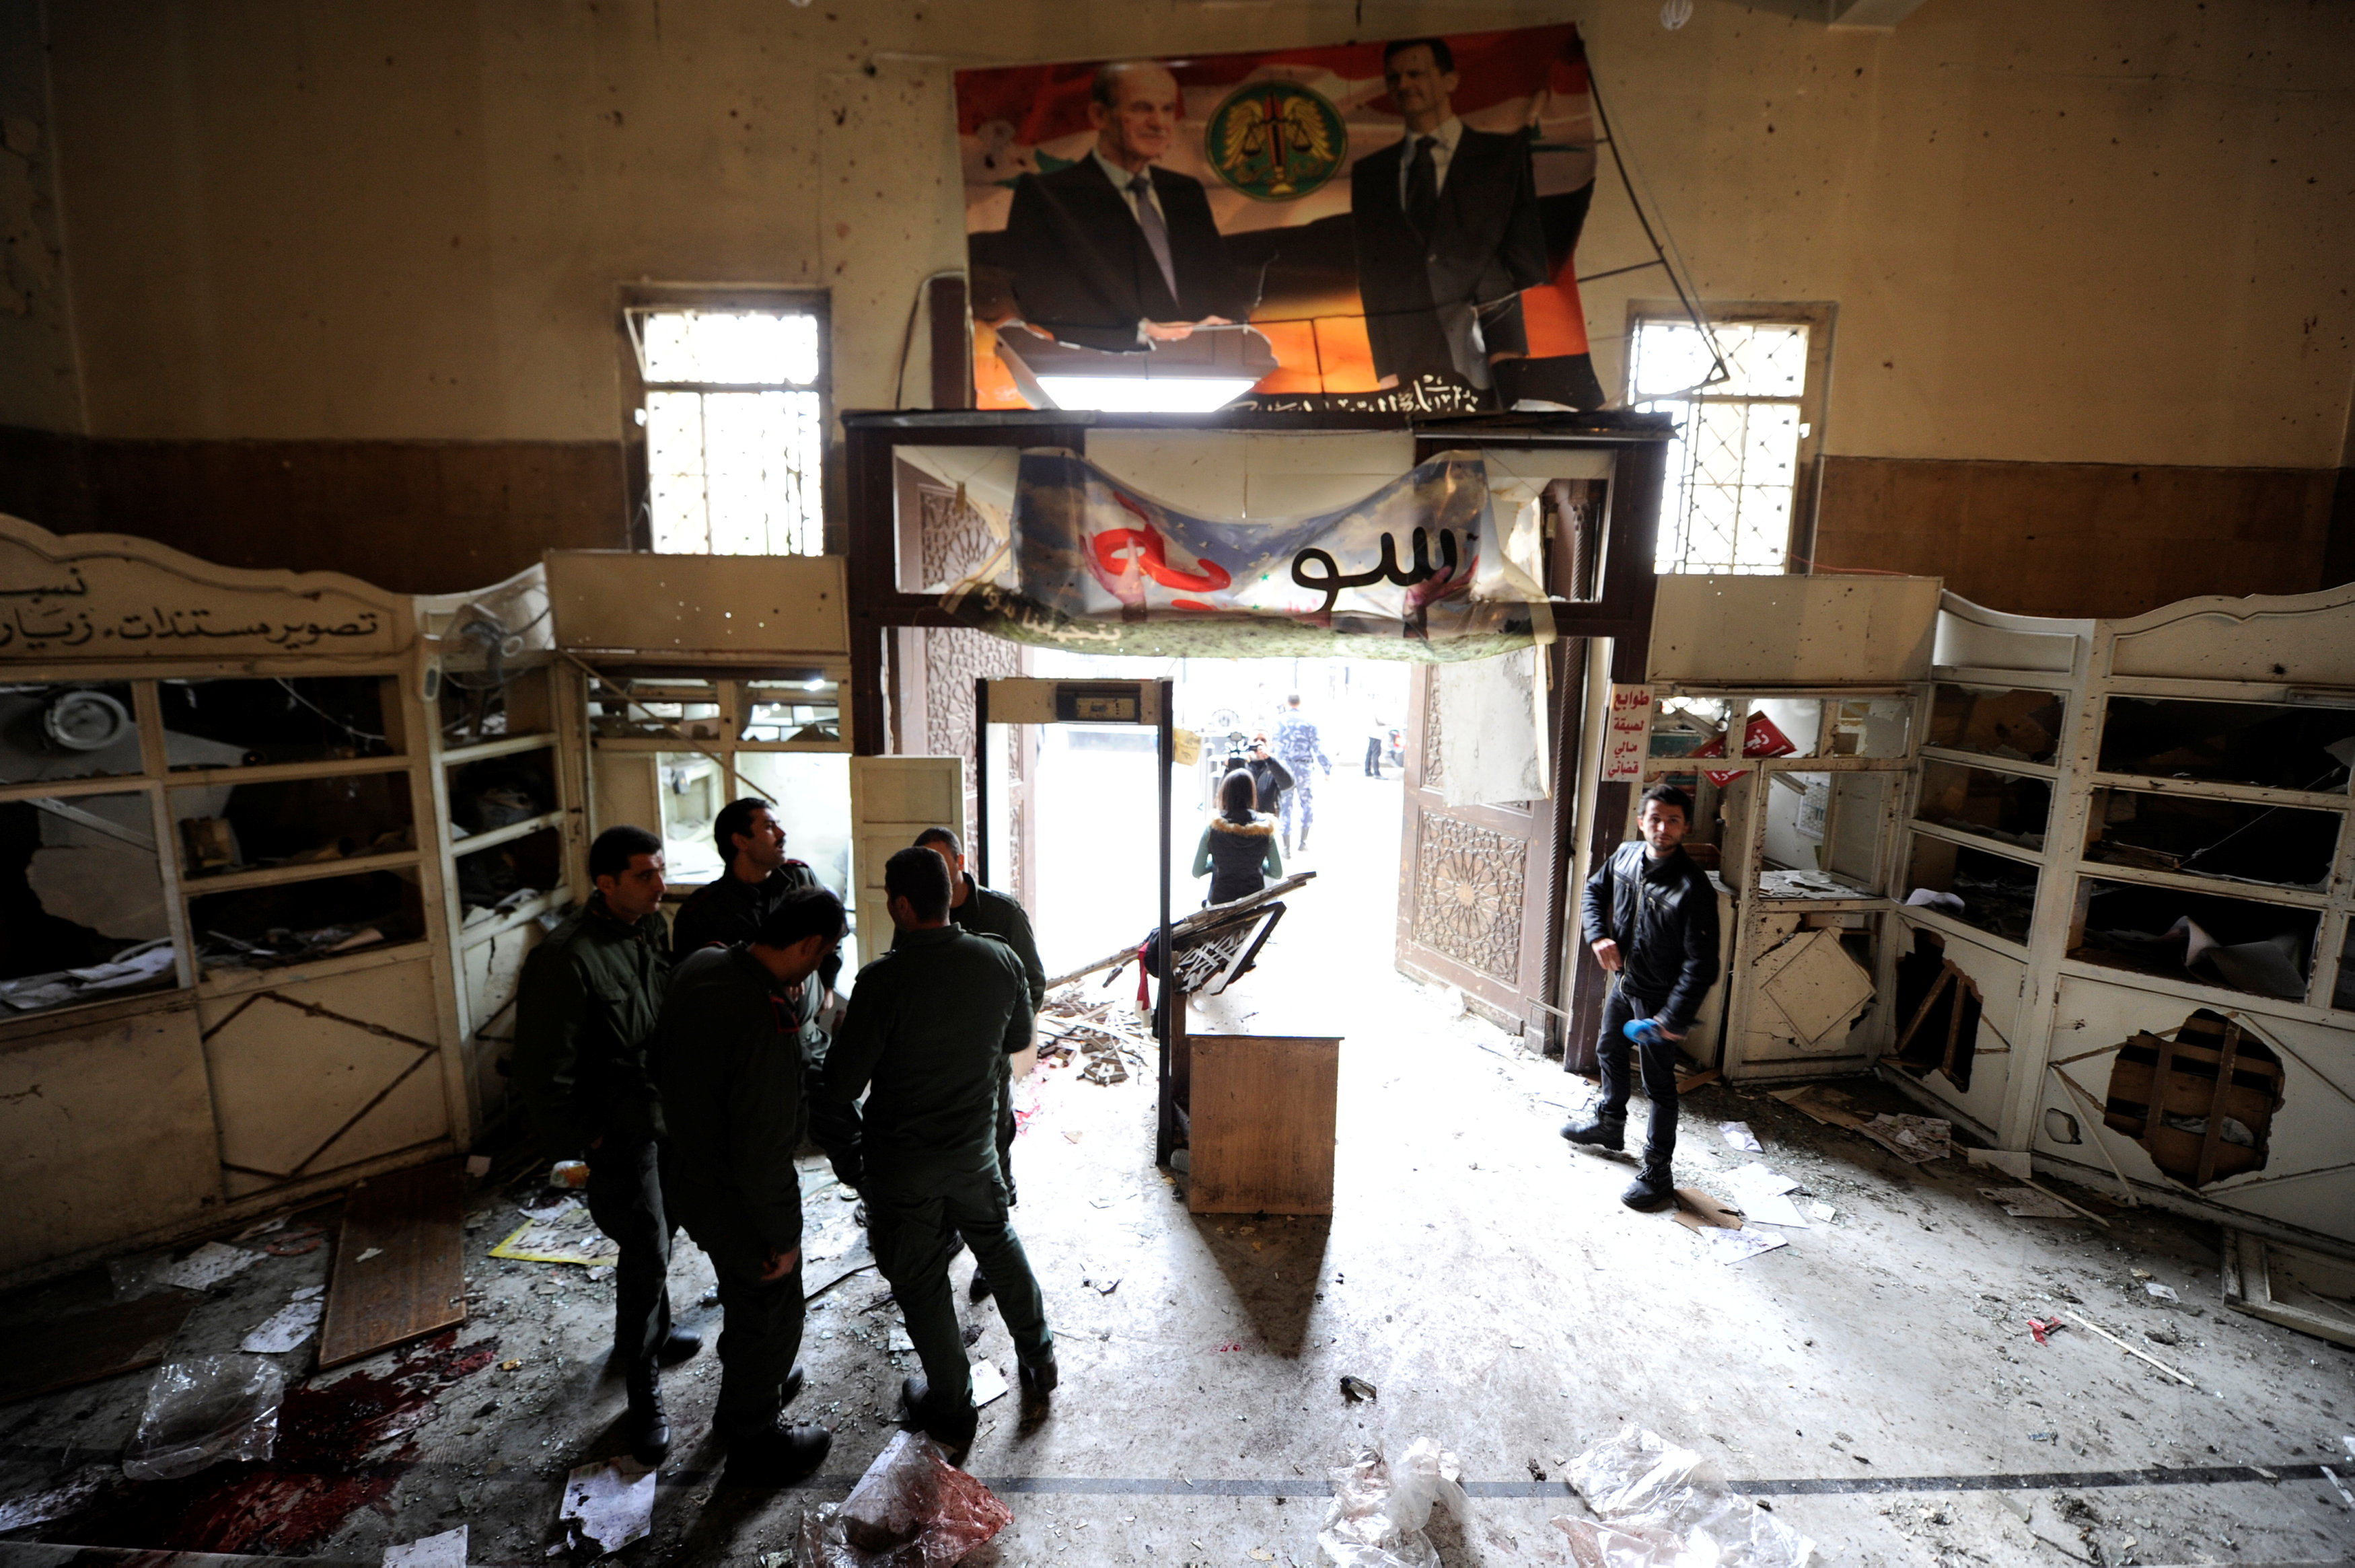 Security personnel stand near a damaged entrance after a suicide blast at the Palace of Justice in Damascus, Syria March 15, 2017. Credit: Omar Sanadiki/Reuters